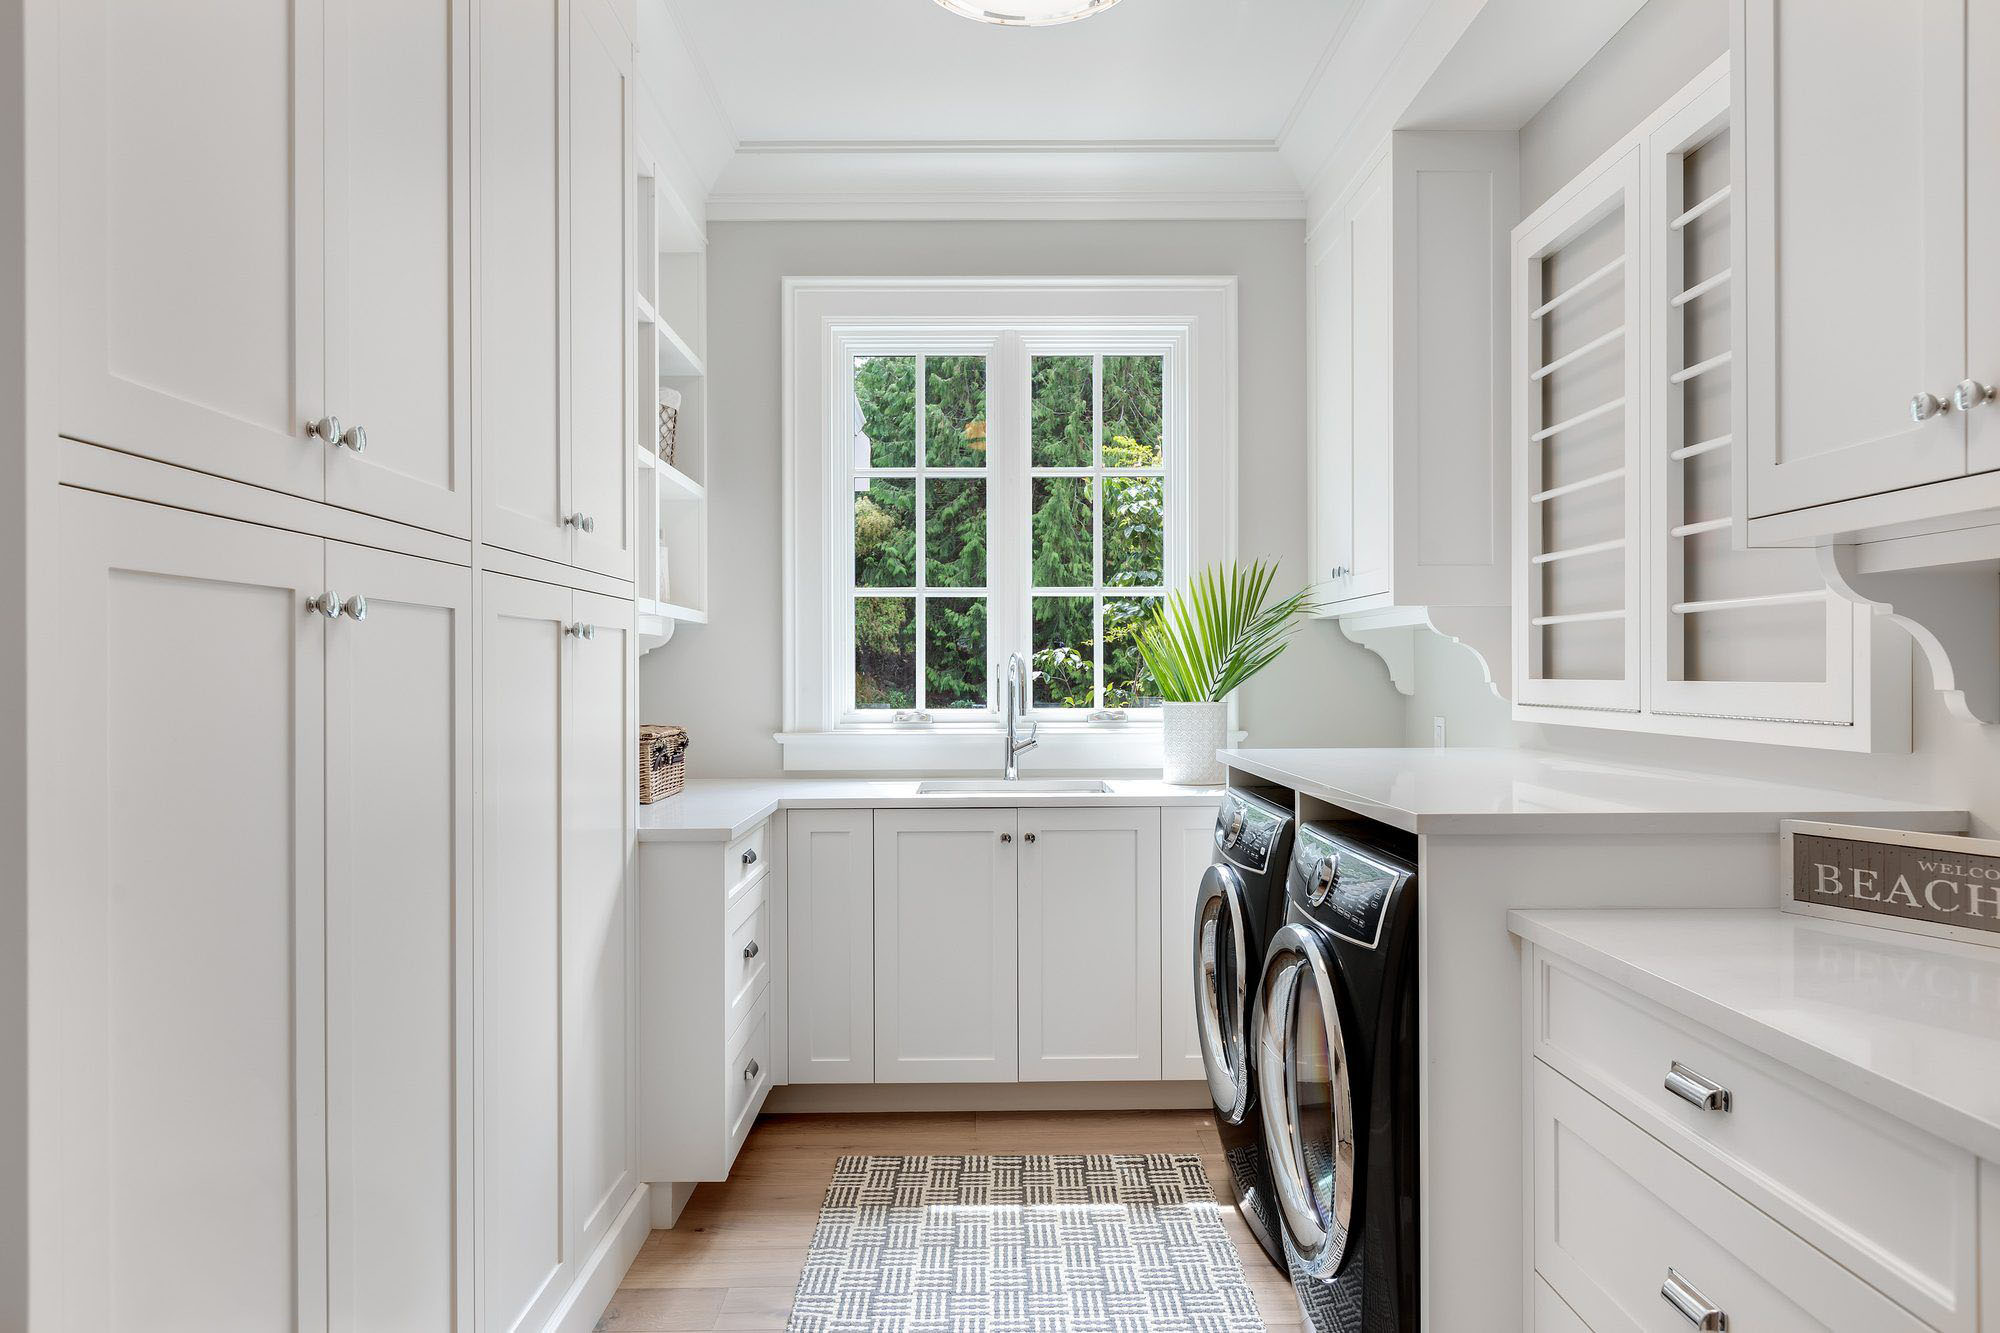 Beautiful light and bright laundry room with white cabinets, pale wood floors, a sink, folding table, countertops and a plant.